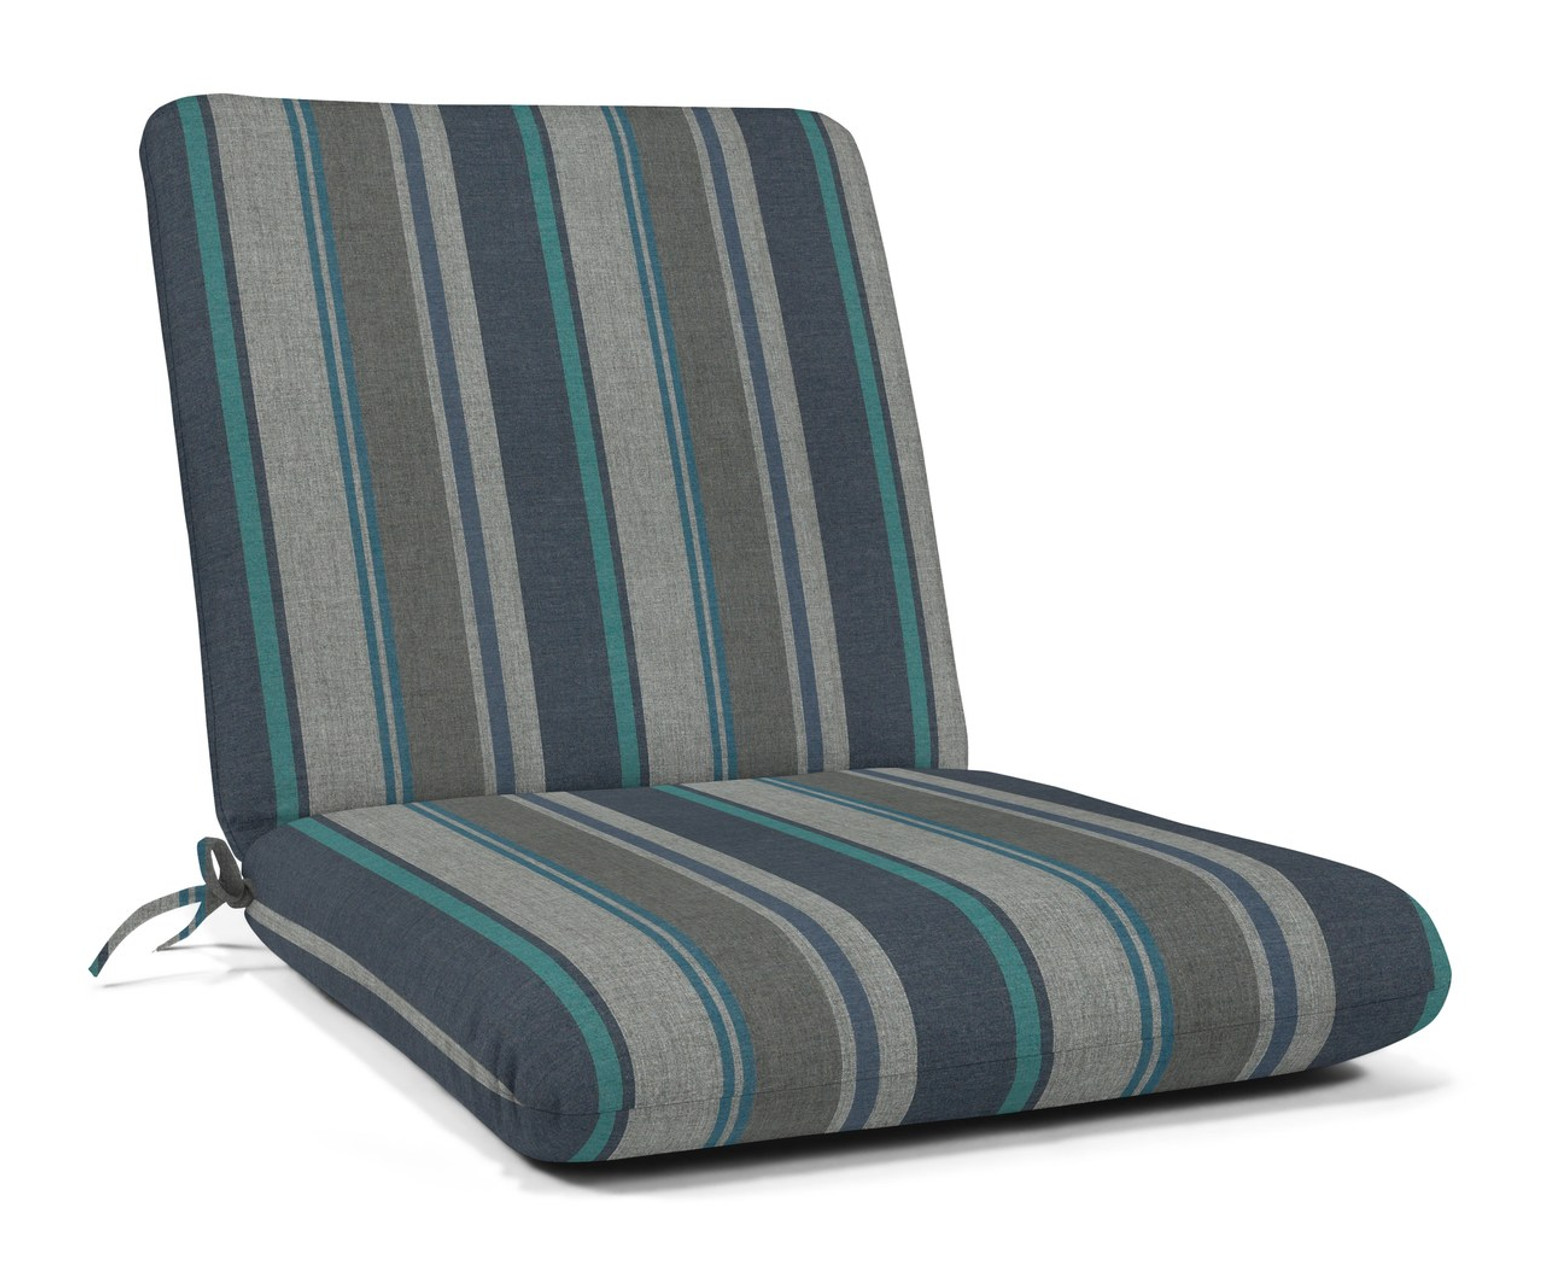 Outstanding Quick Ship Sunbrella 44 X 22 Club Chair Cushion Trusted Coast Pabps2019 Chair Design Images Pabps2019Com